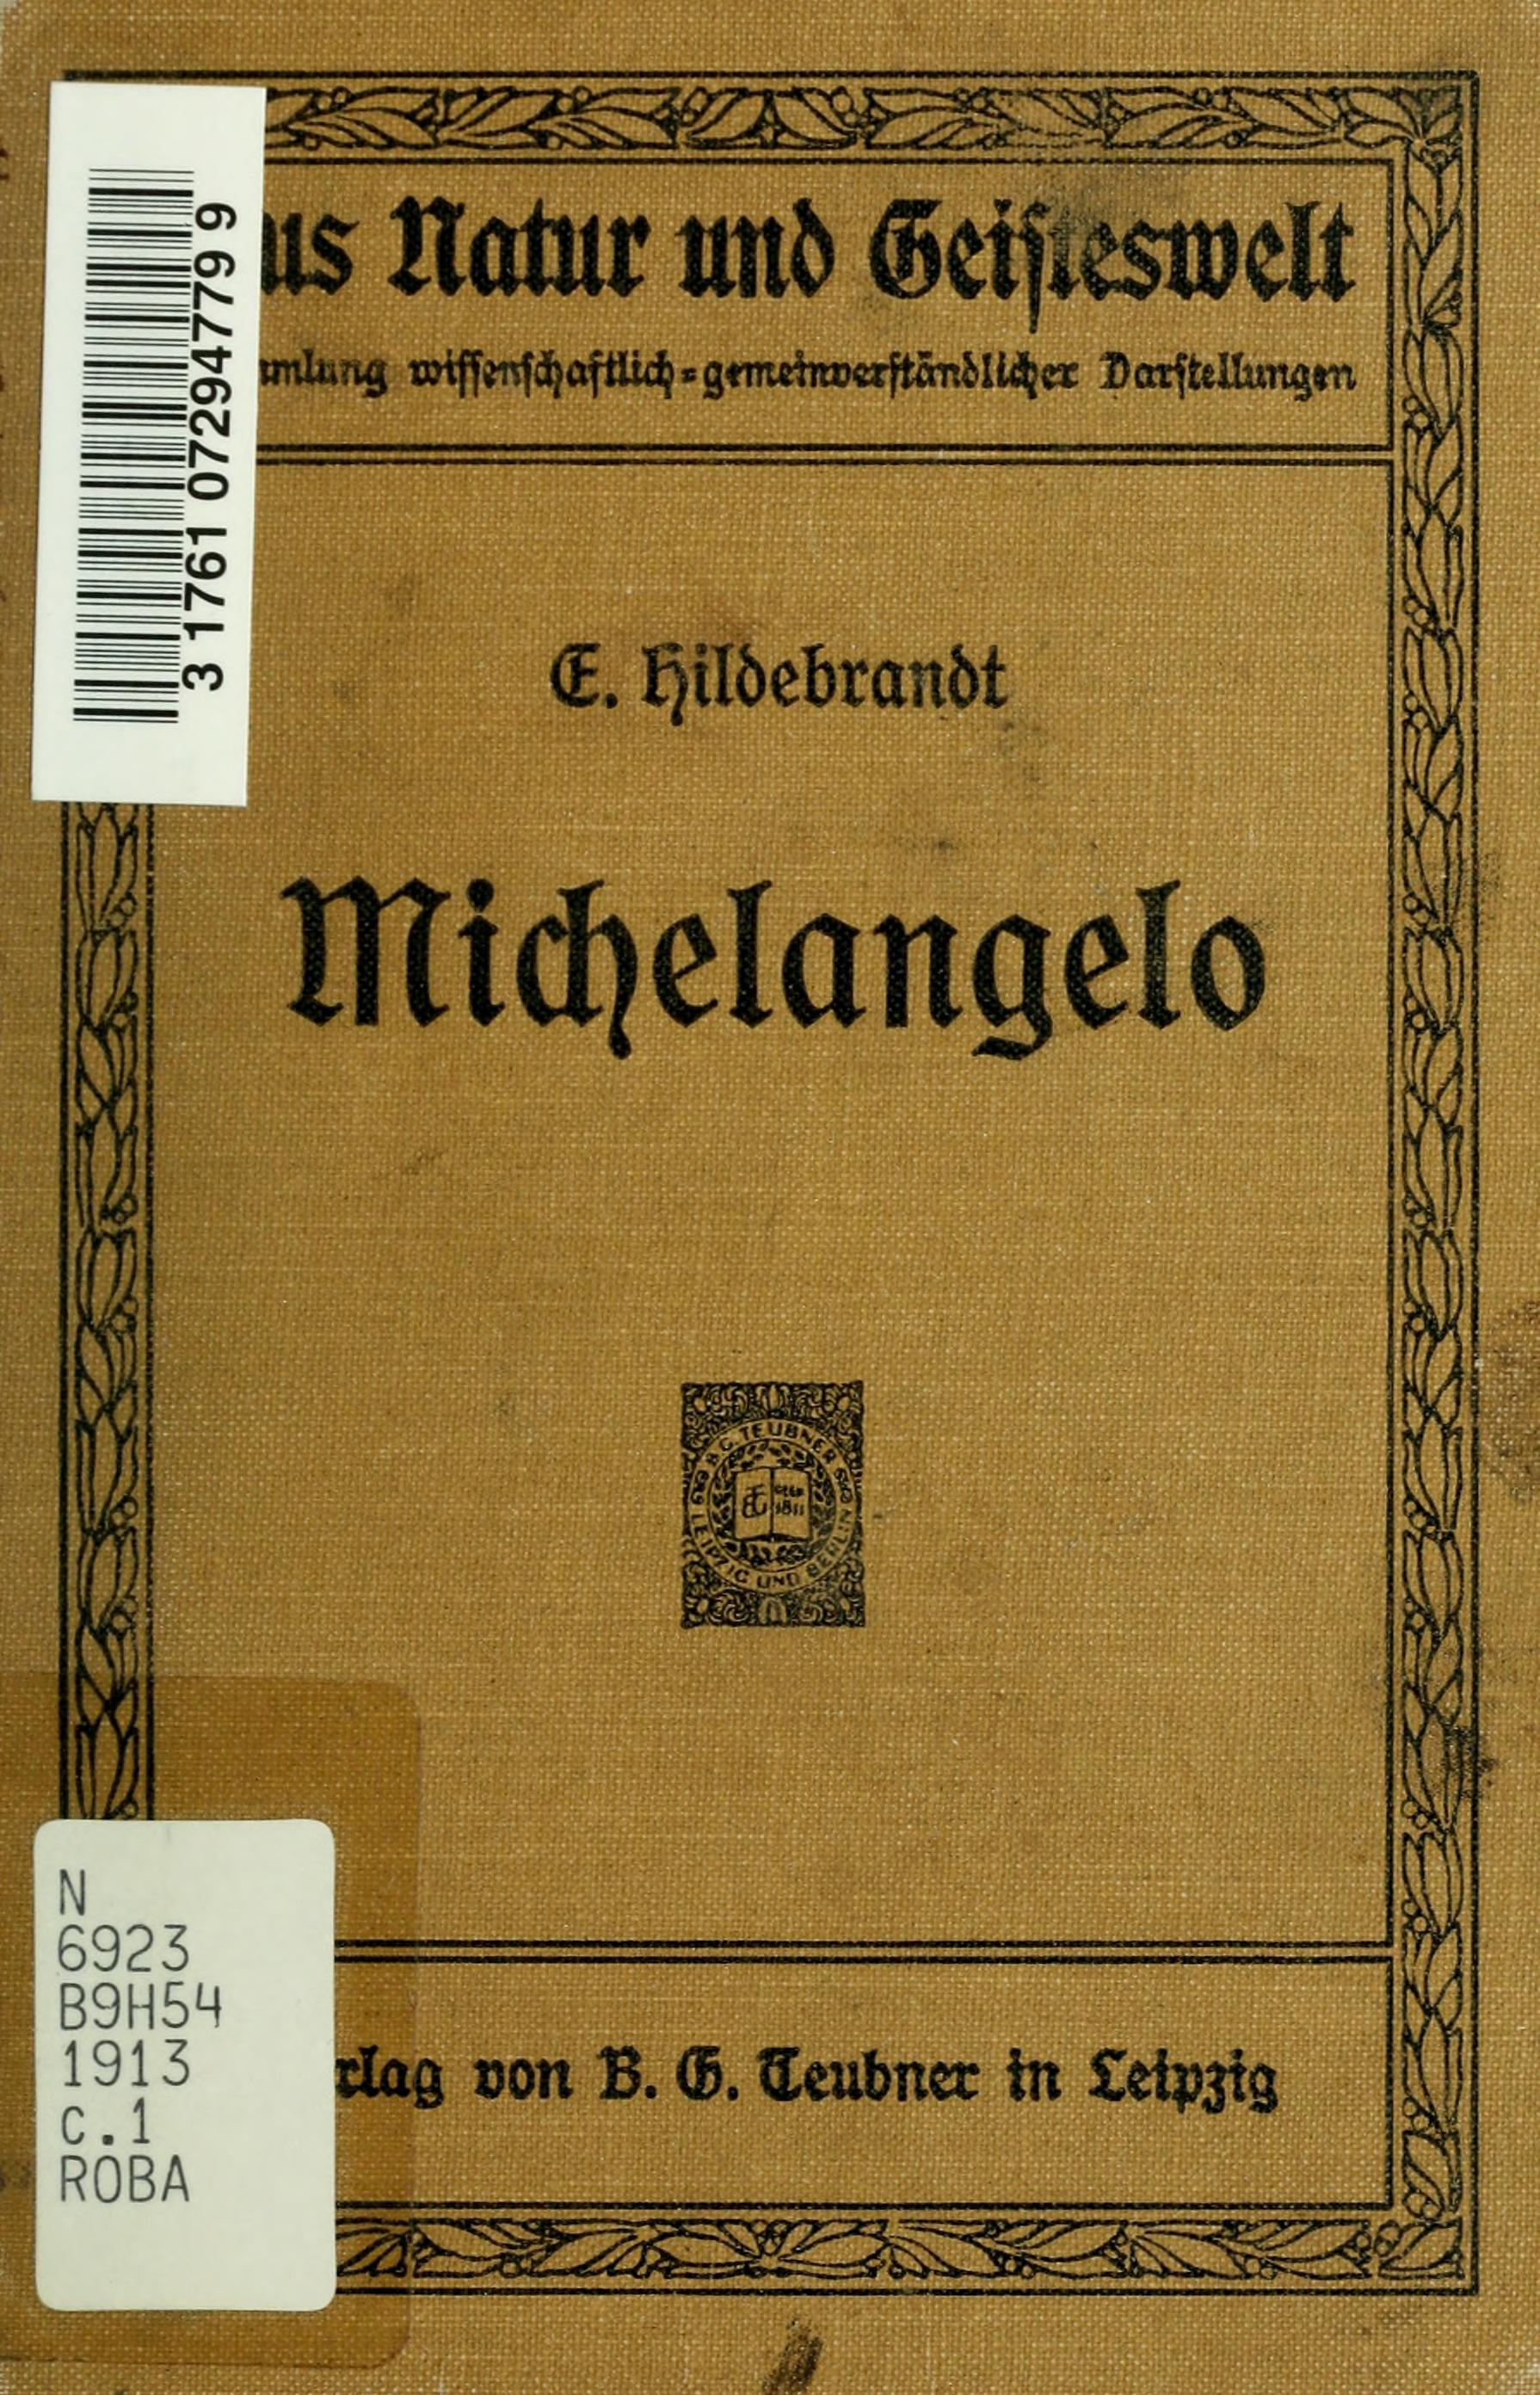 michelangeloeine00hild&server=ia800500.us.archive.org&page=preview&